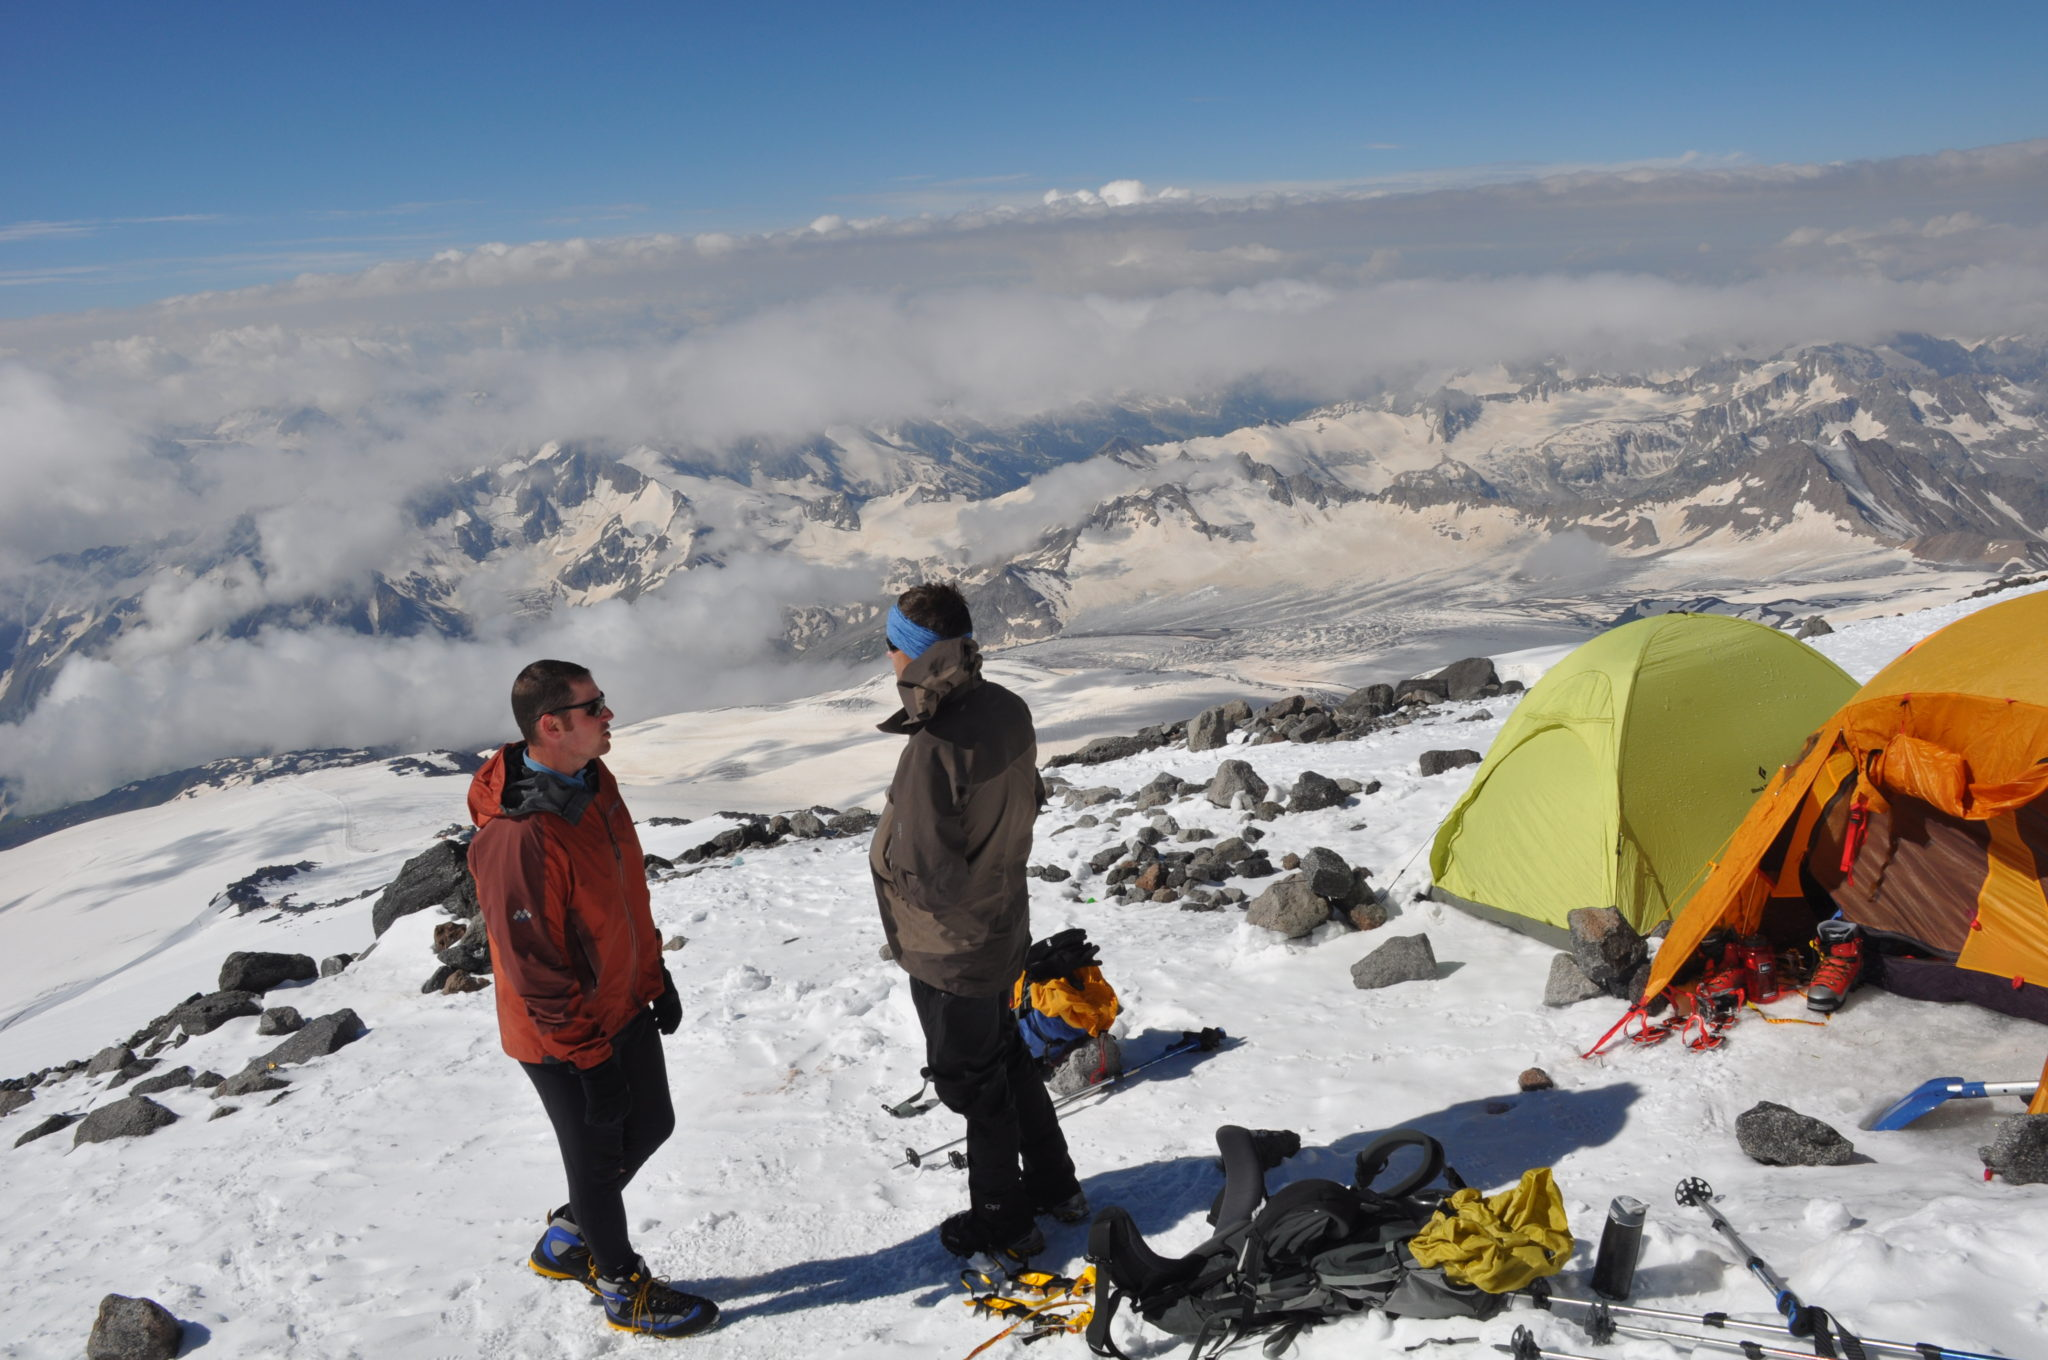 patagonia christian personals The first adventure travel company designed exclusively for people 50 and over established in 1987, eldertreks offers active, off-the-beaten-path, and small-group adventures by both land and sea in over 80 countries.